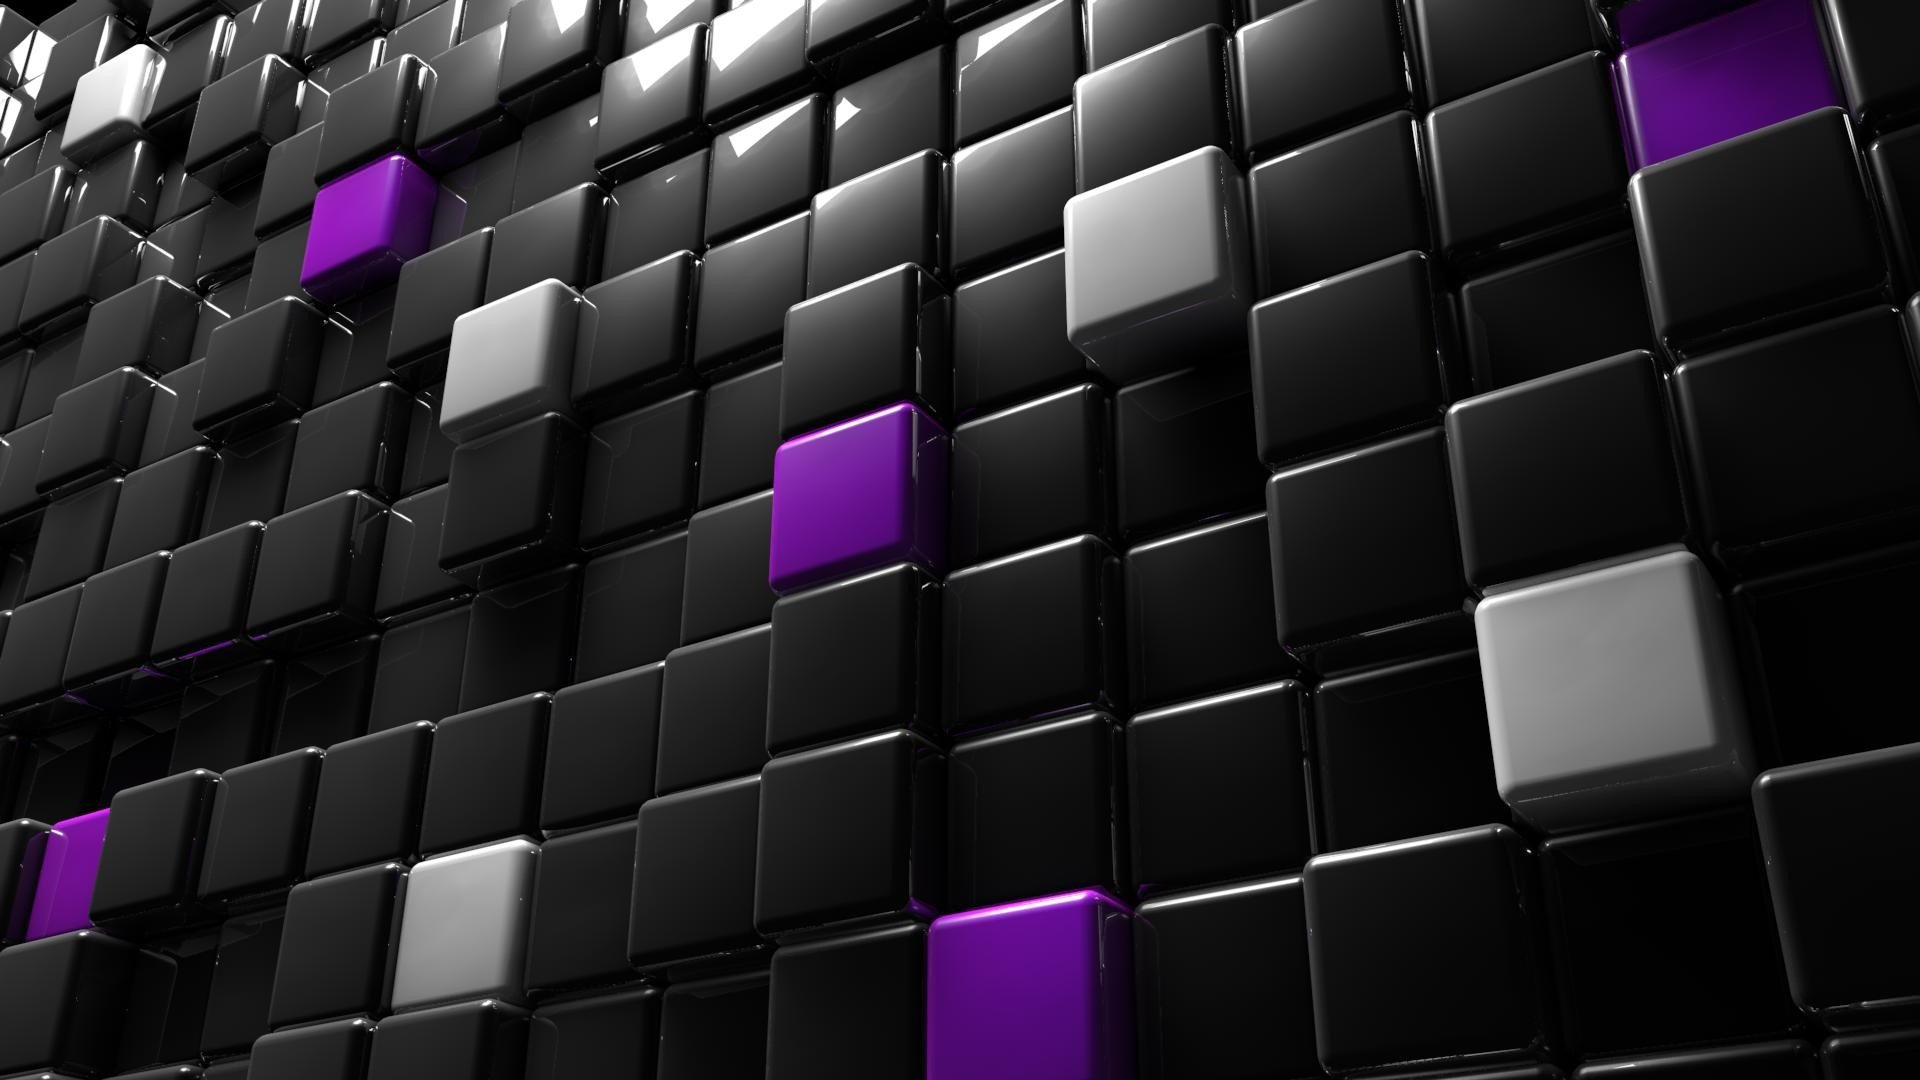 Awesome Cube free wallpaper ID:71649 for hd 1920x1080 PC